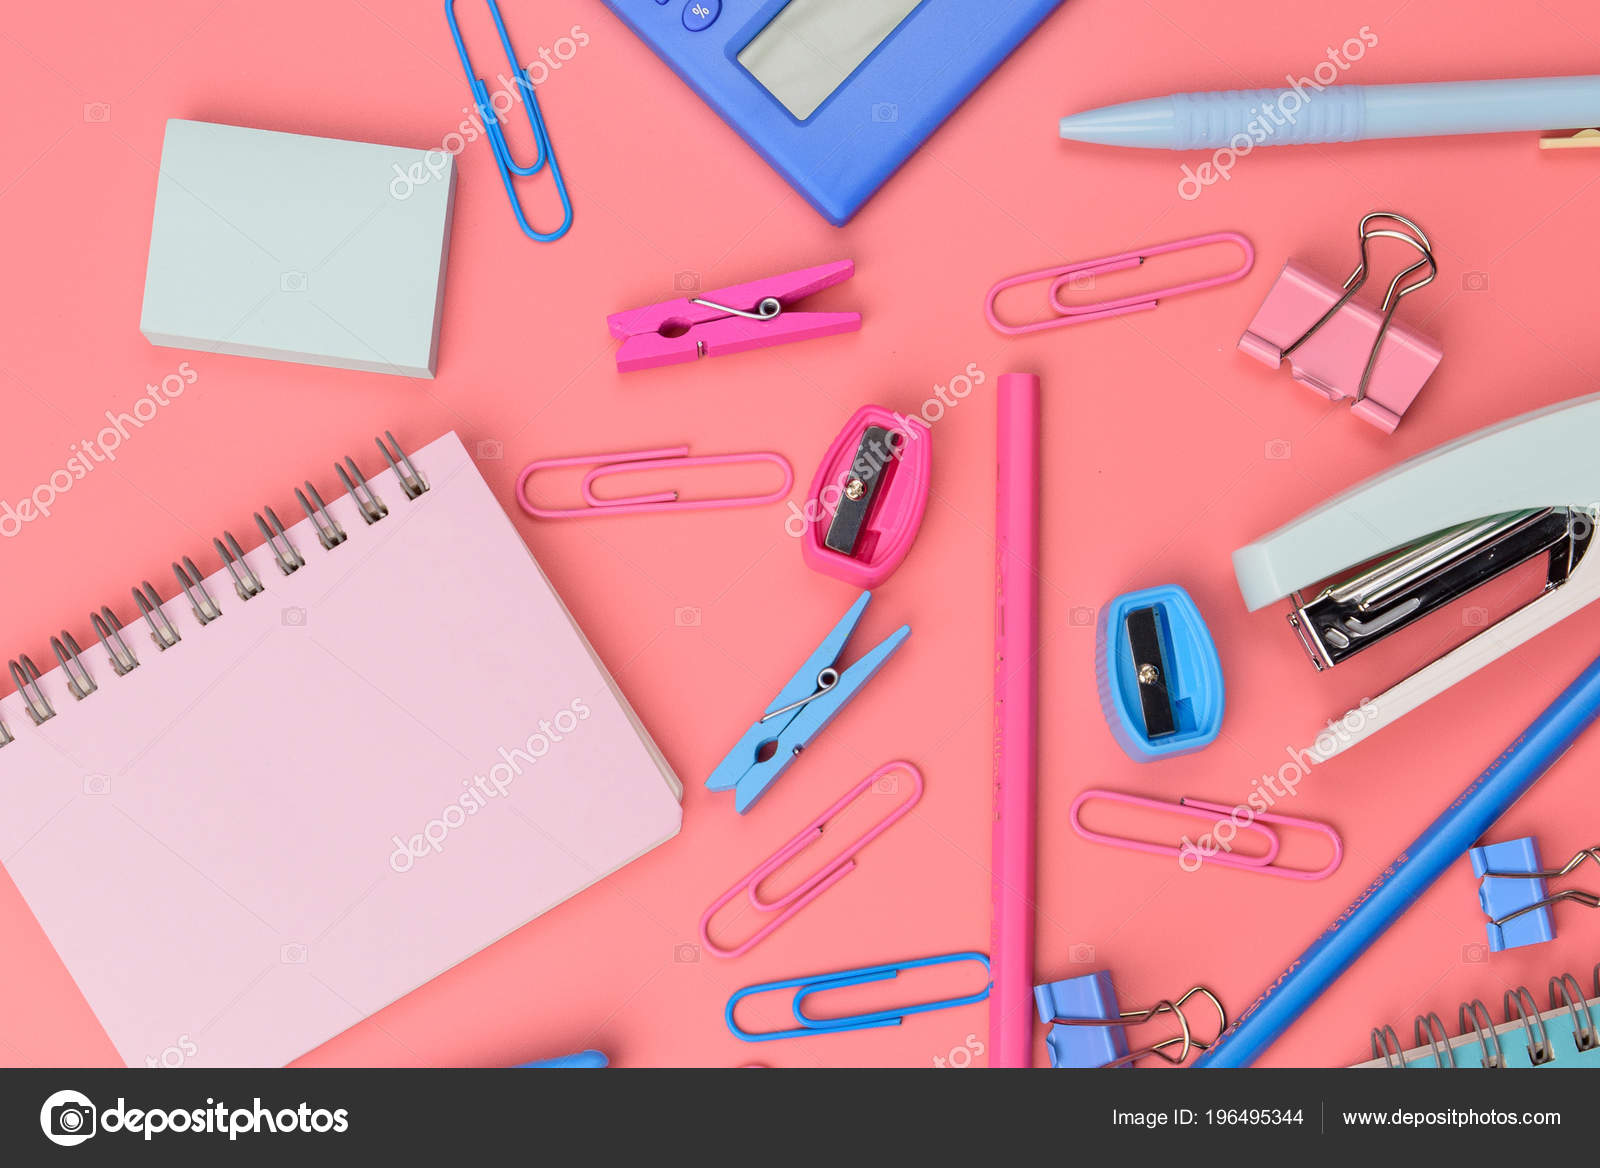 Stationary Concept Flat Lay Top View Photo Scissors Pencils